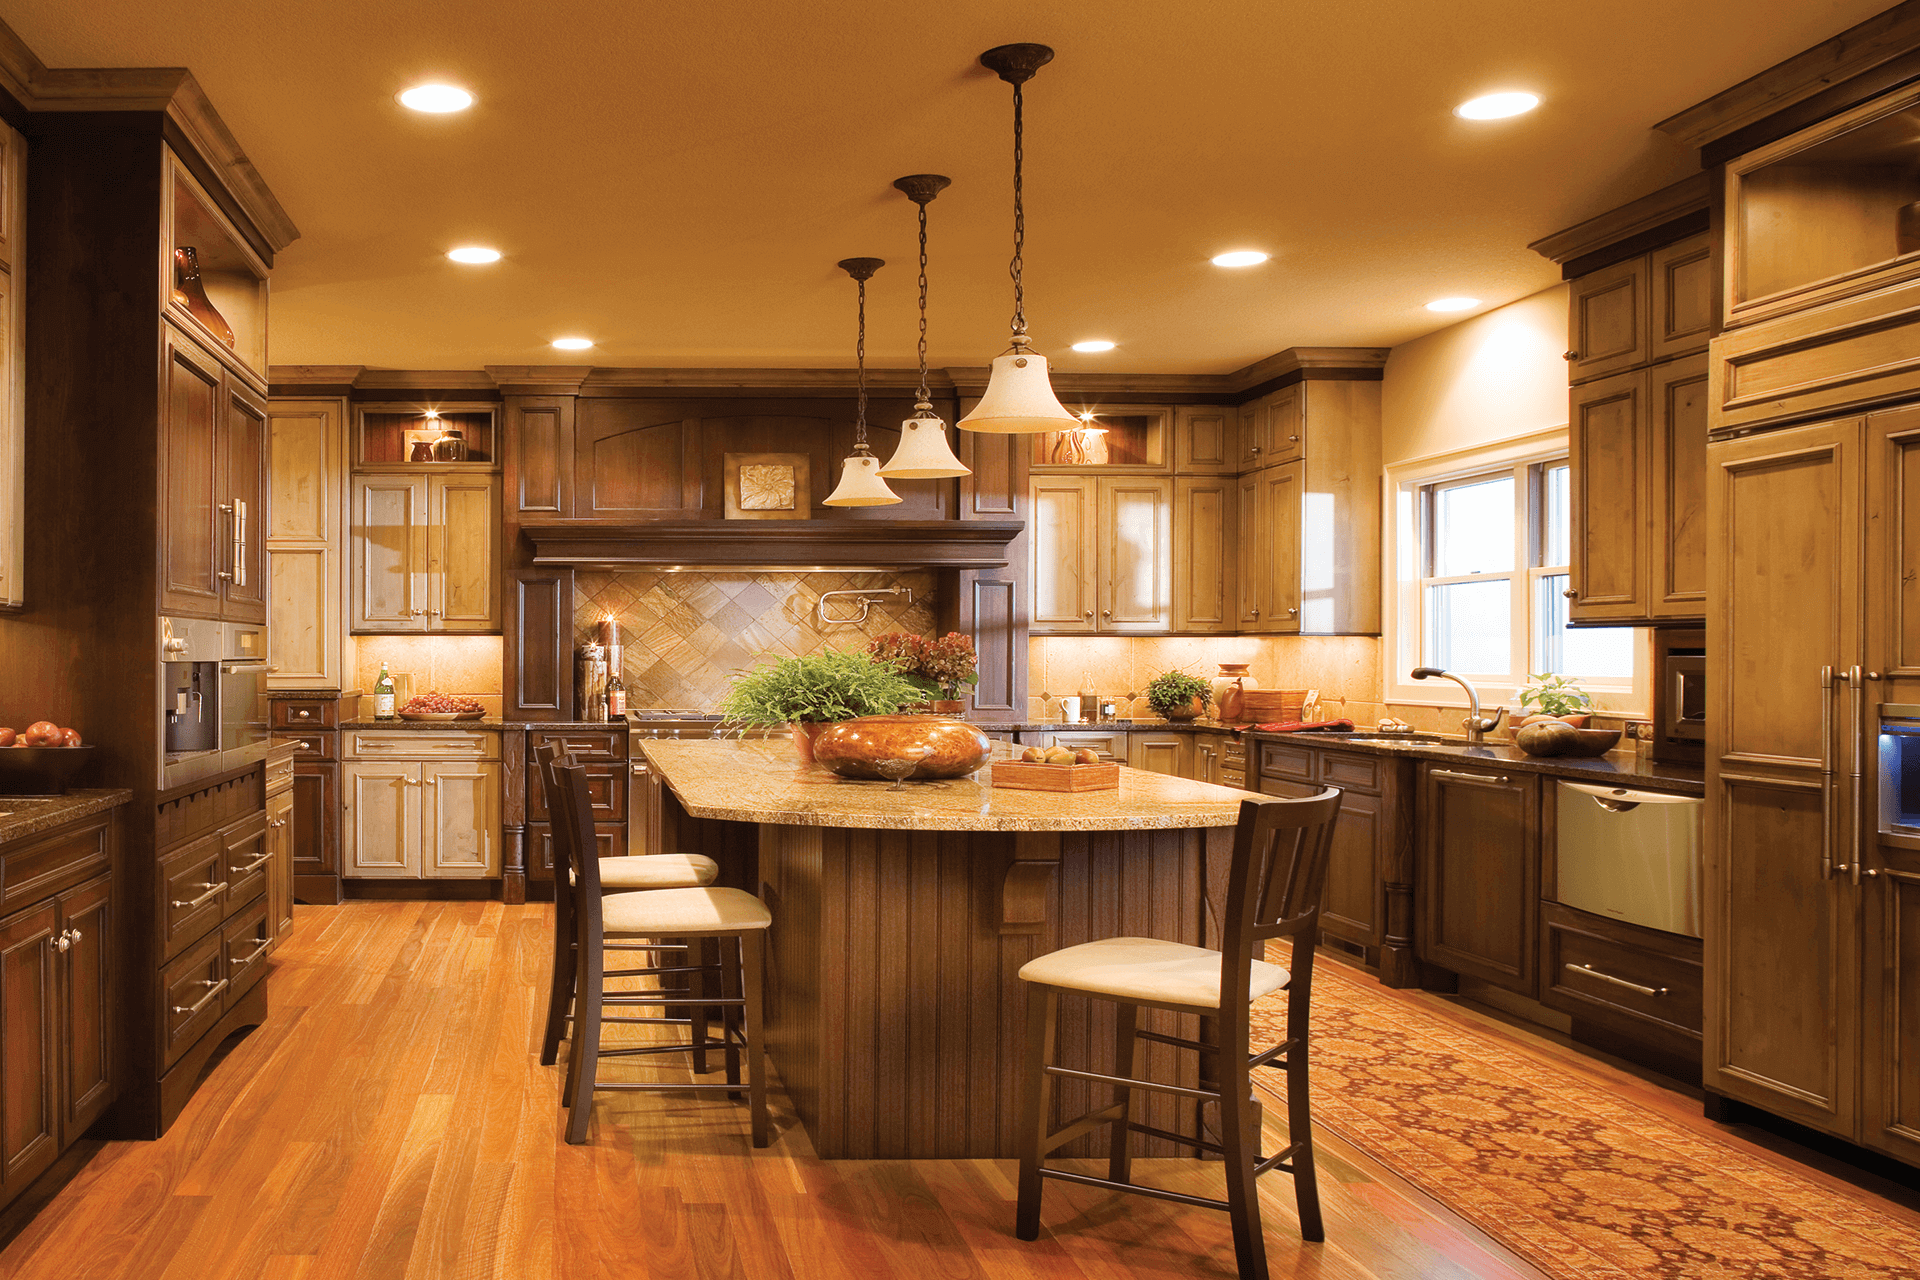 Kitchen cabinet trends, kitchen design using a mix of different wood cabinets, designed by Lumberjack's Kitchens and Baths, serving Cleveland, Akron, Canton and all of the northeast Ohio area.